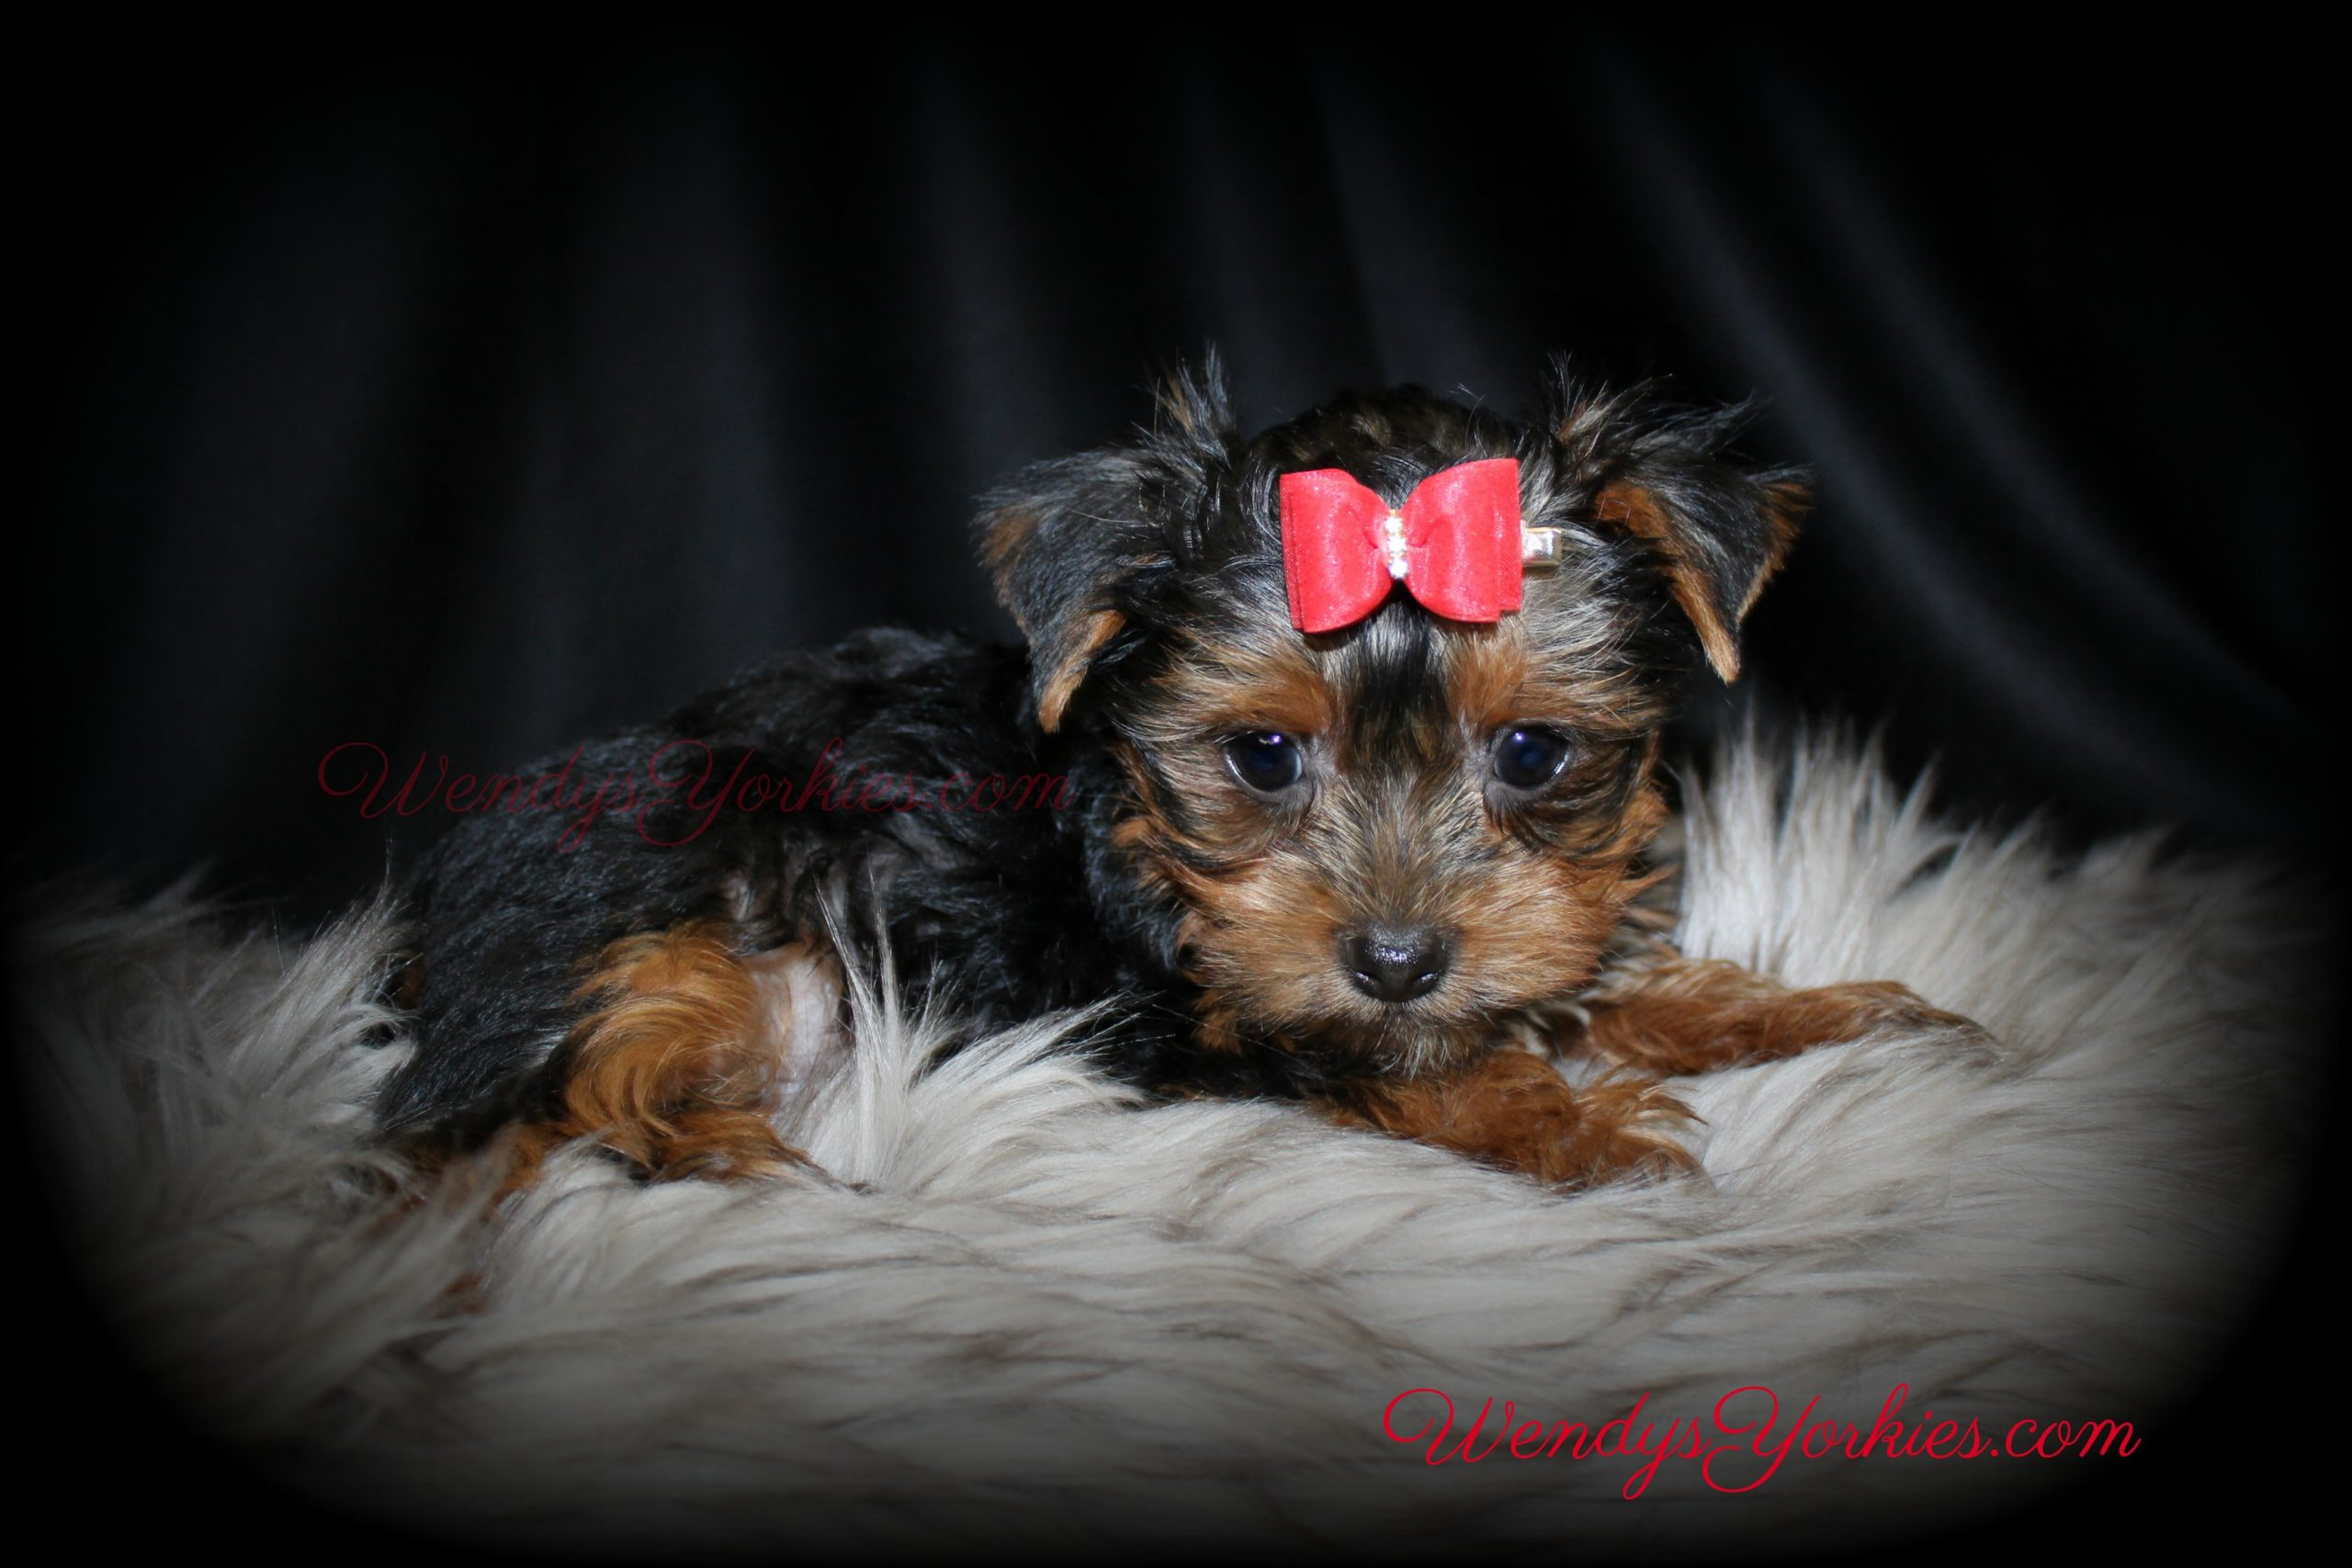 Teacup Male YOrkie puppy for sale, Romeo, WendysYorkies.com